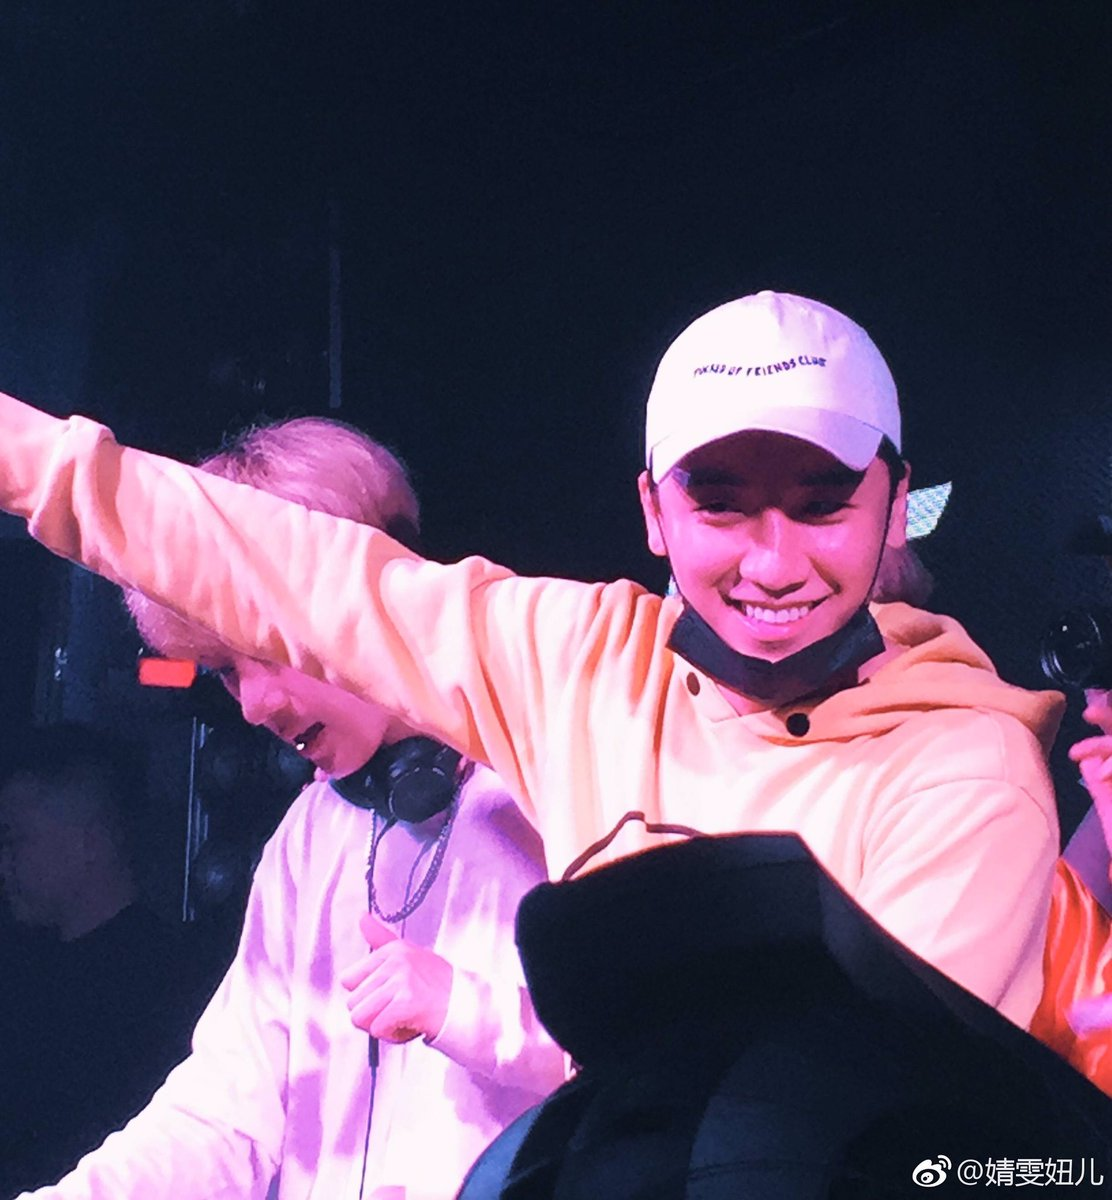 Seungri supporting his NHR DJ Crew in Xiamen China 2017-05-0910 (25)